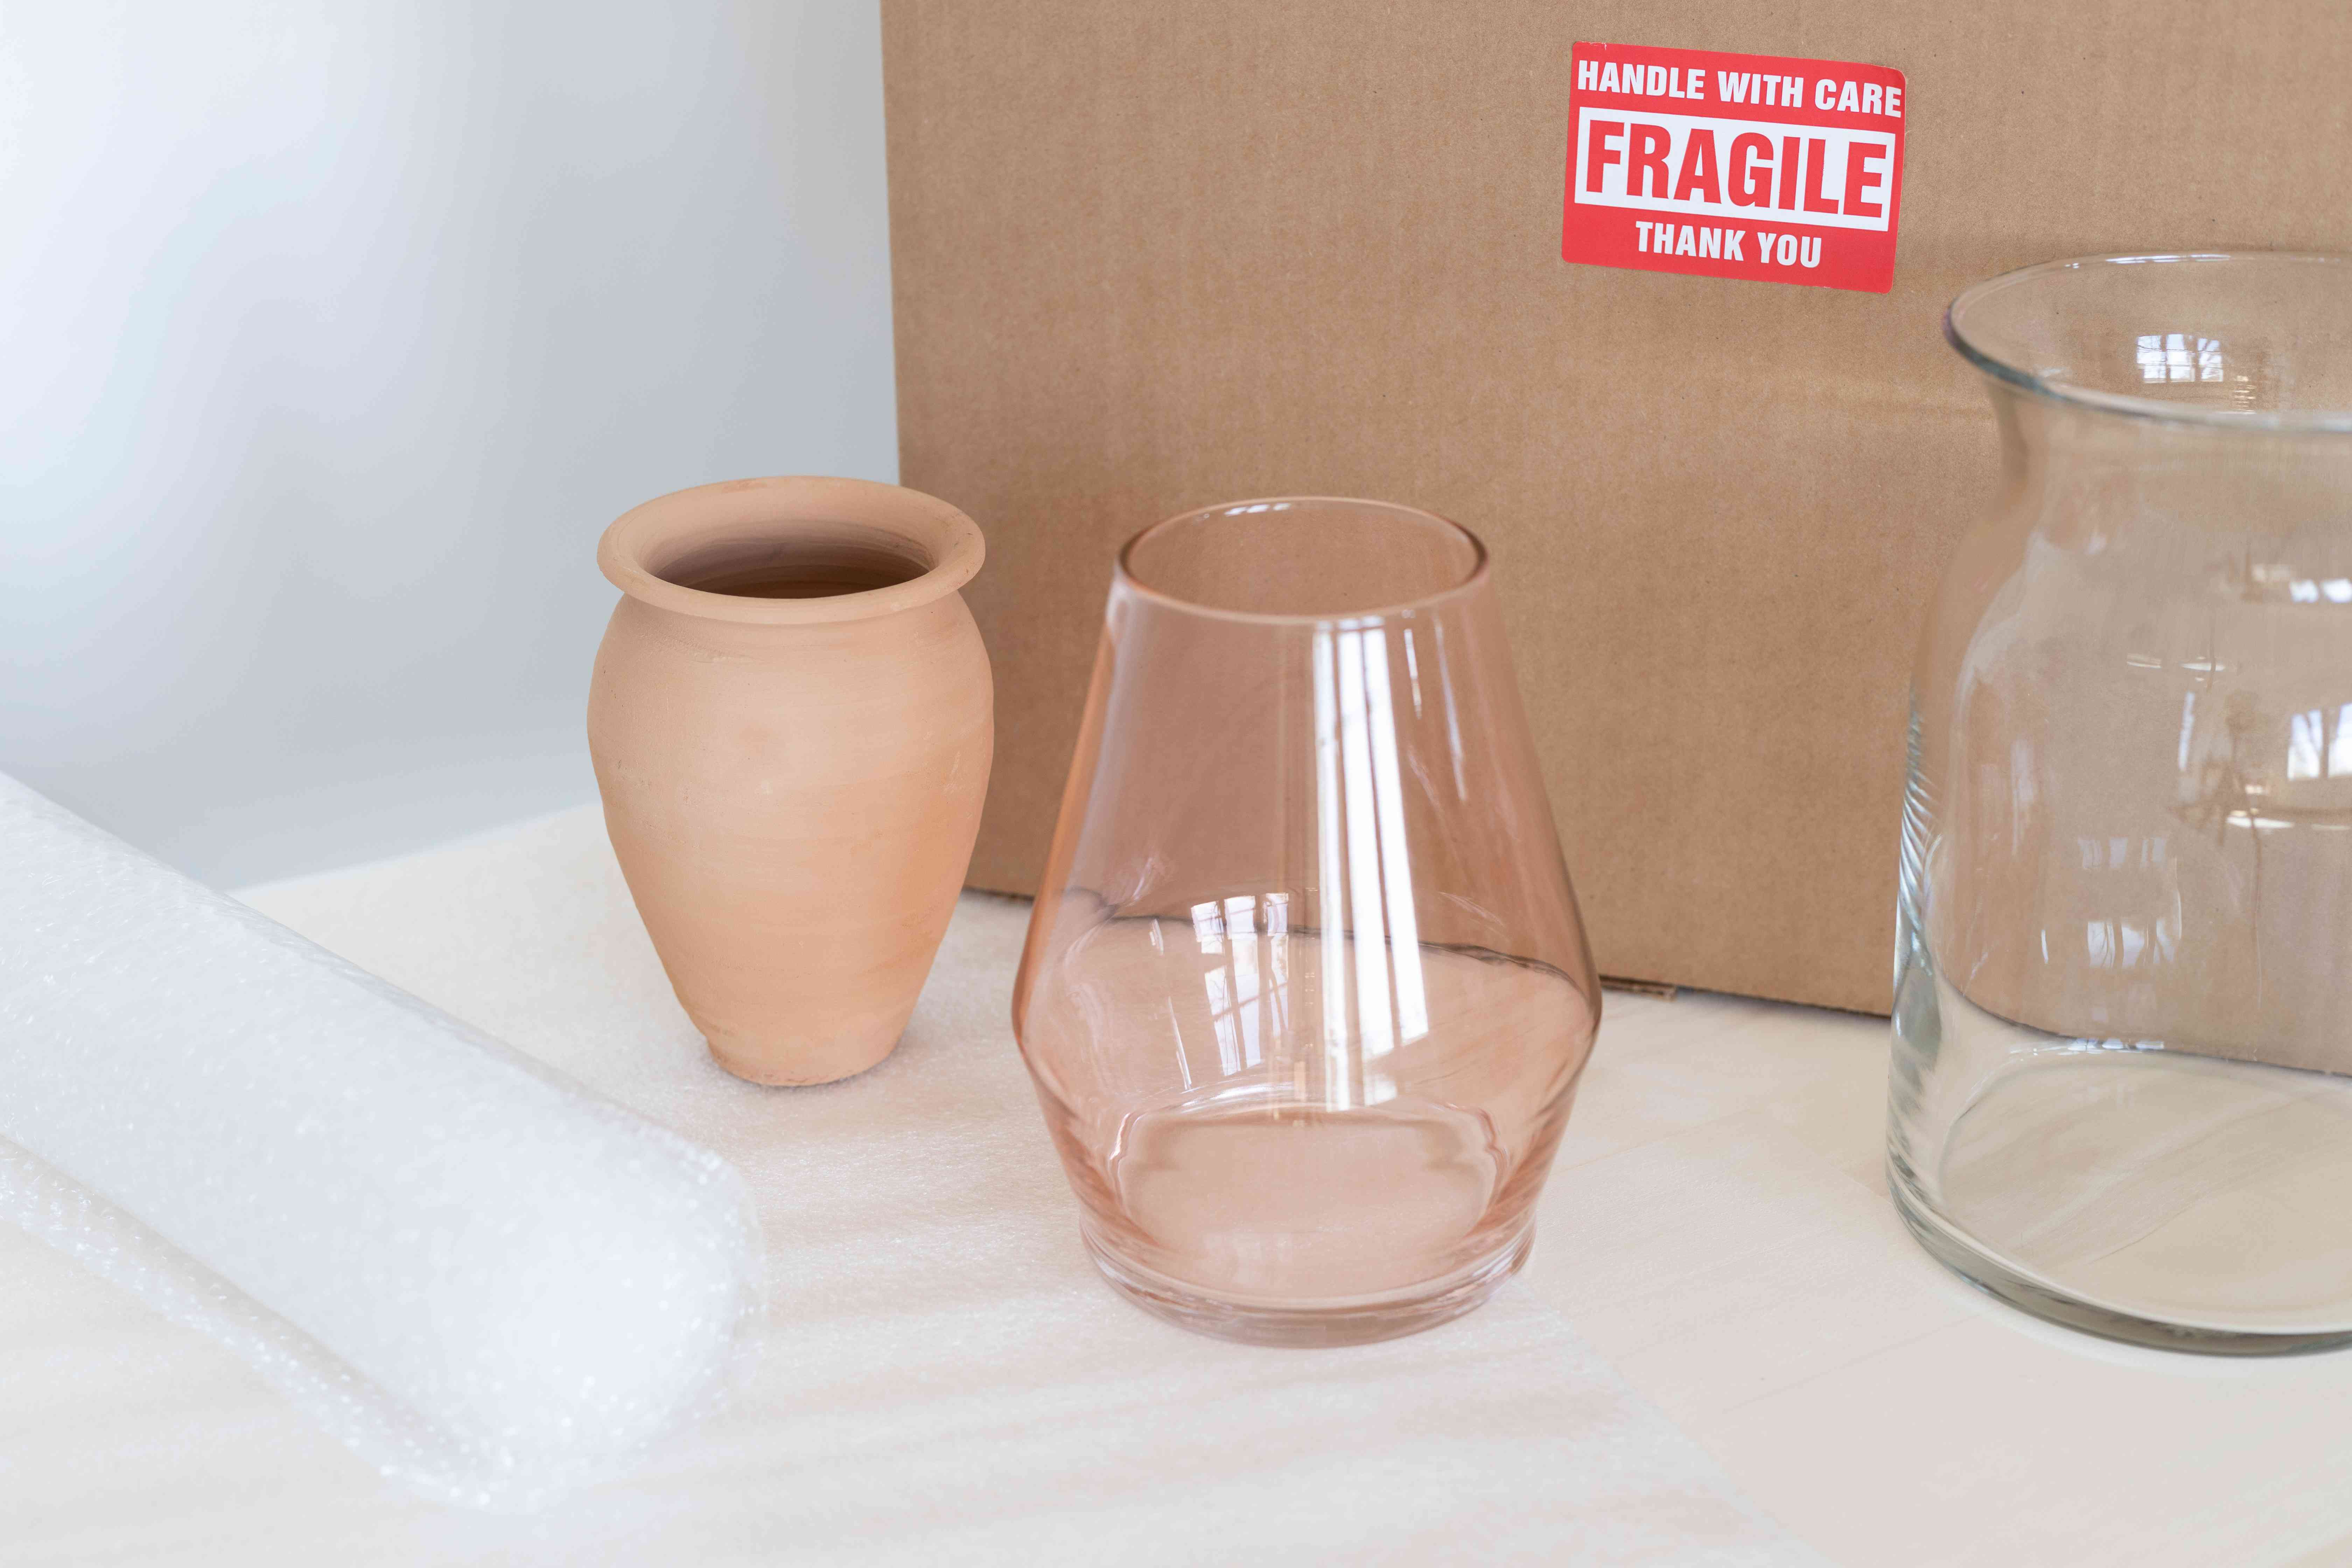 Glass and clay vases in front of moving box and bubble wrap